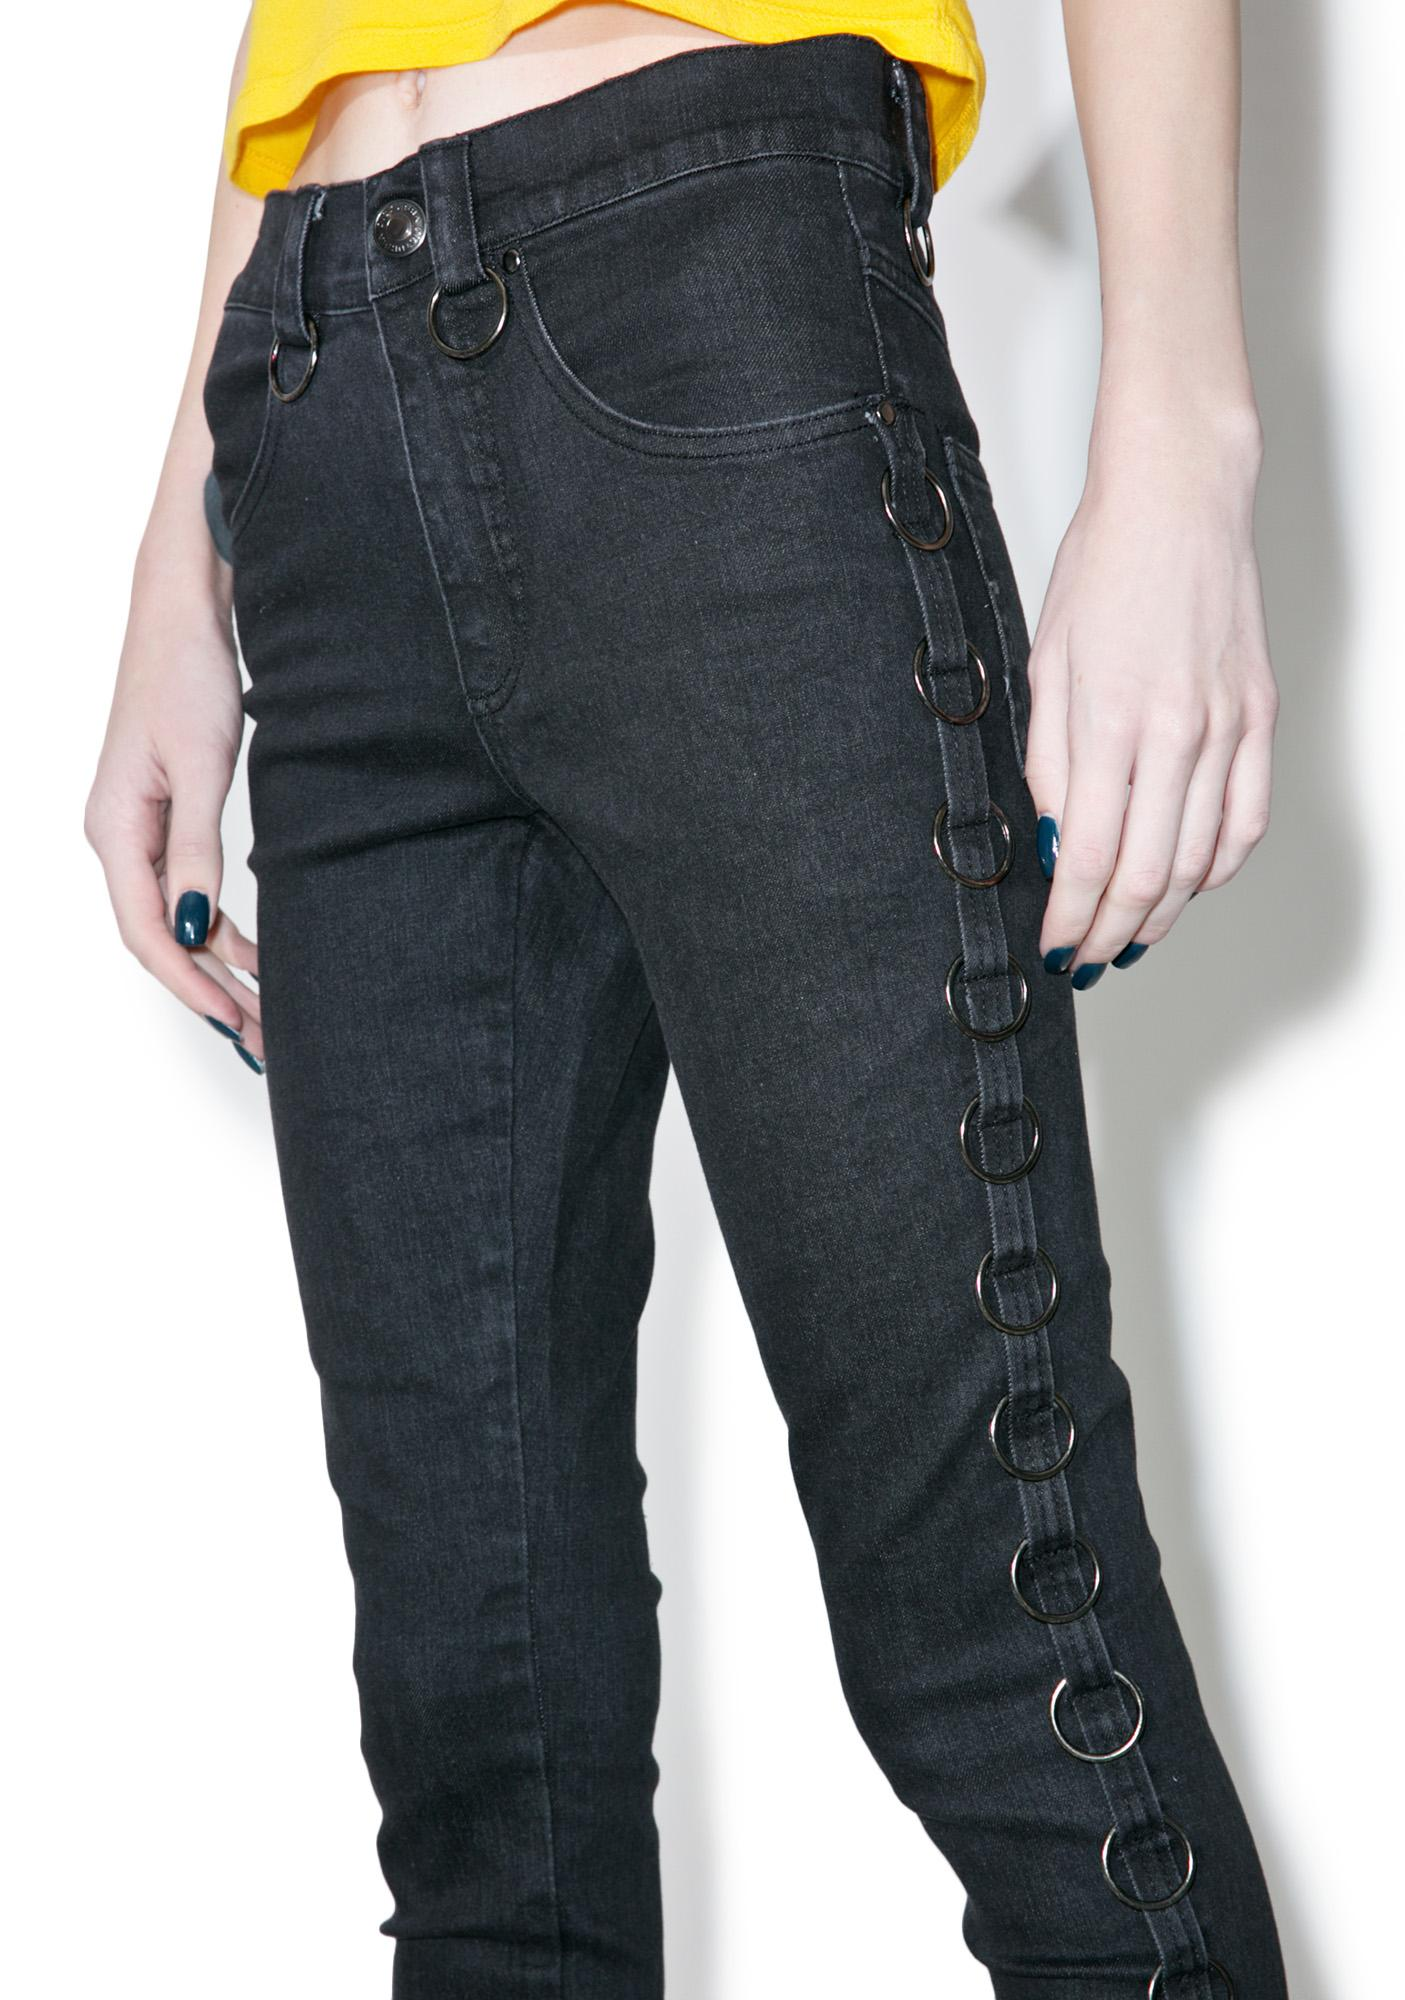 Denim - Anneau Pantalon Denim Yk2o5